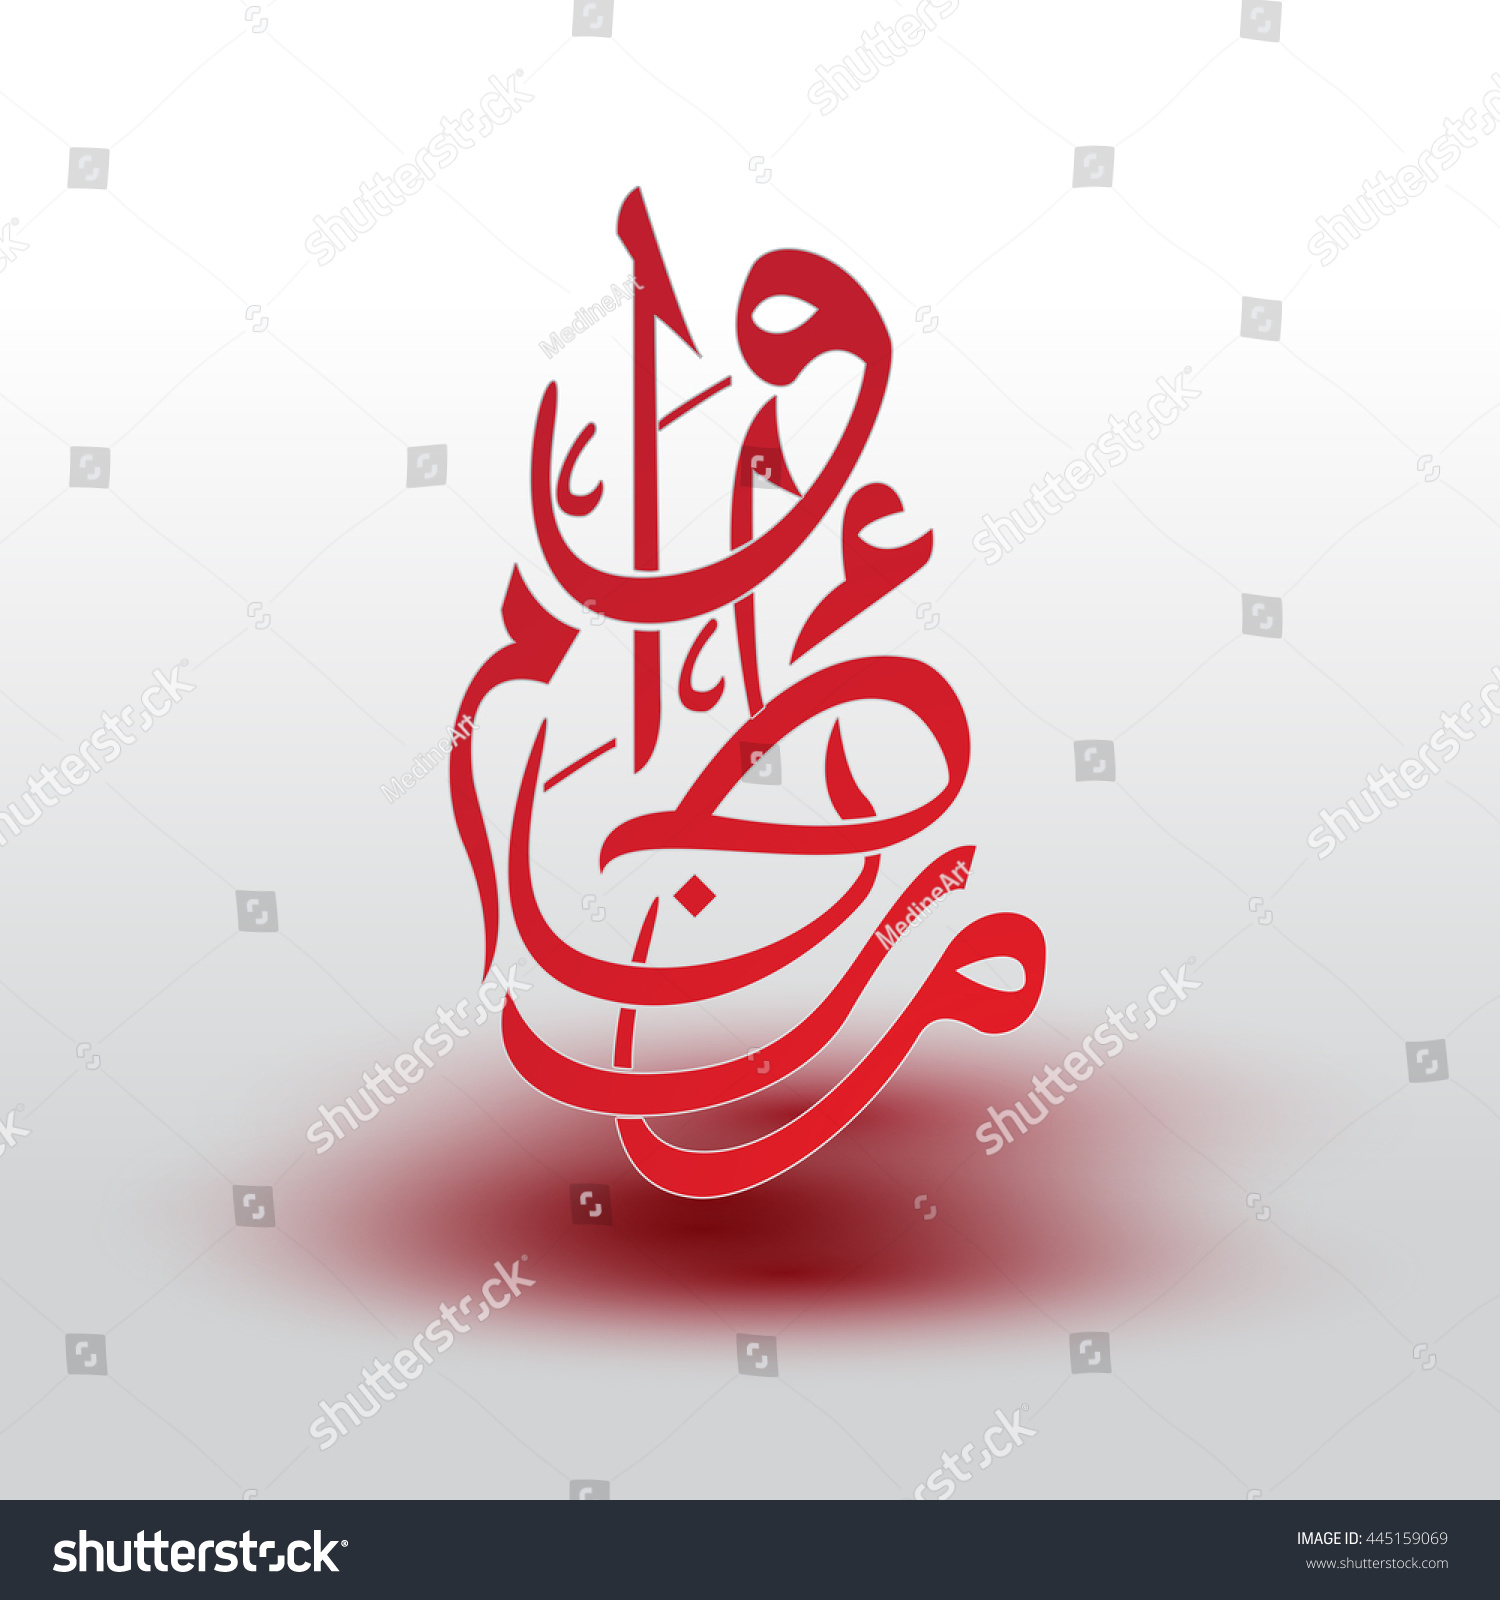 Beautiful arabic letters design without meaning stock vector beautiful arabic letters design without meaning buycottarizona Image collections